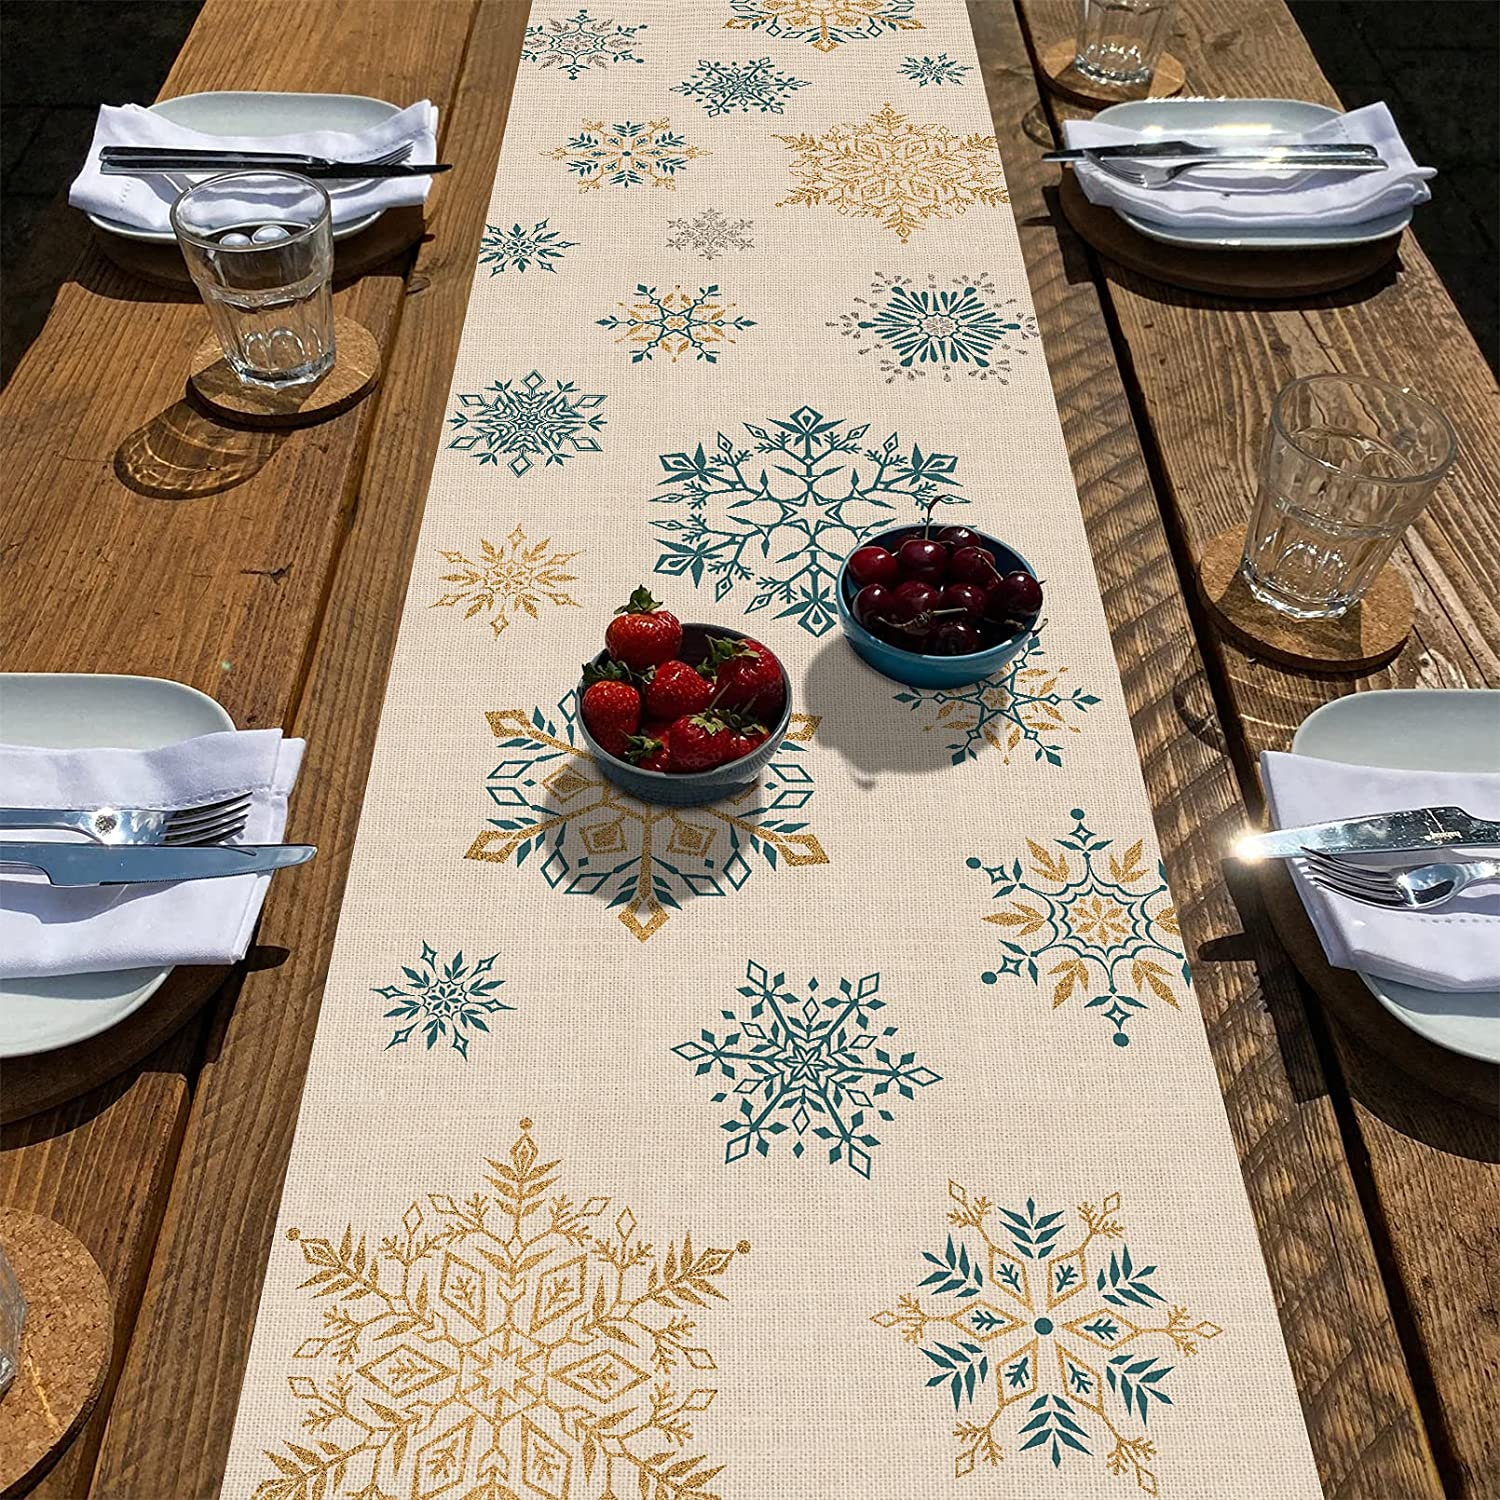 Seliem Winter Snowflakes Table Runner, Gold Blue Tabletop Scarf Home Kitchen Christmas Holiday Decor Sign, Seasonal Farmhouse Rustic Burlap Dining Decorations Party Supplies 13 X 72 Inch